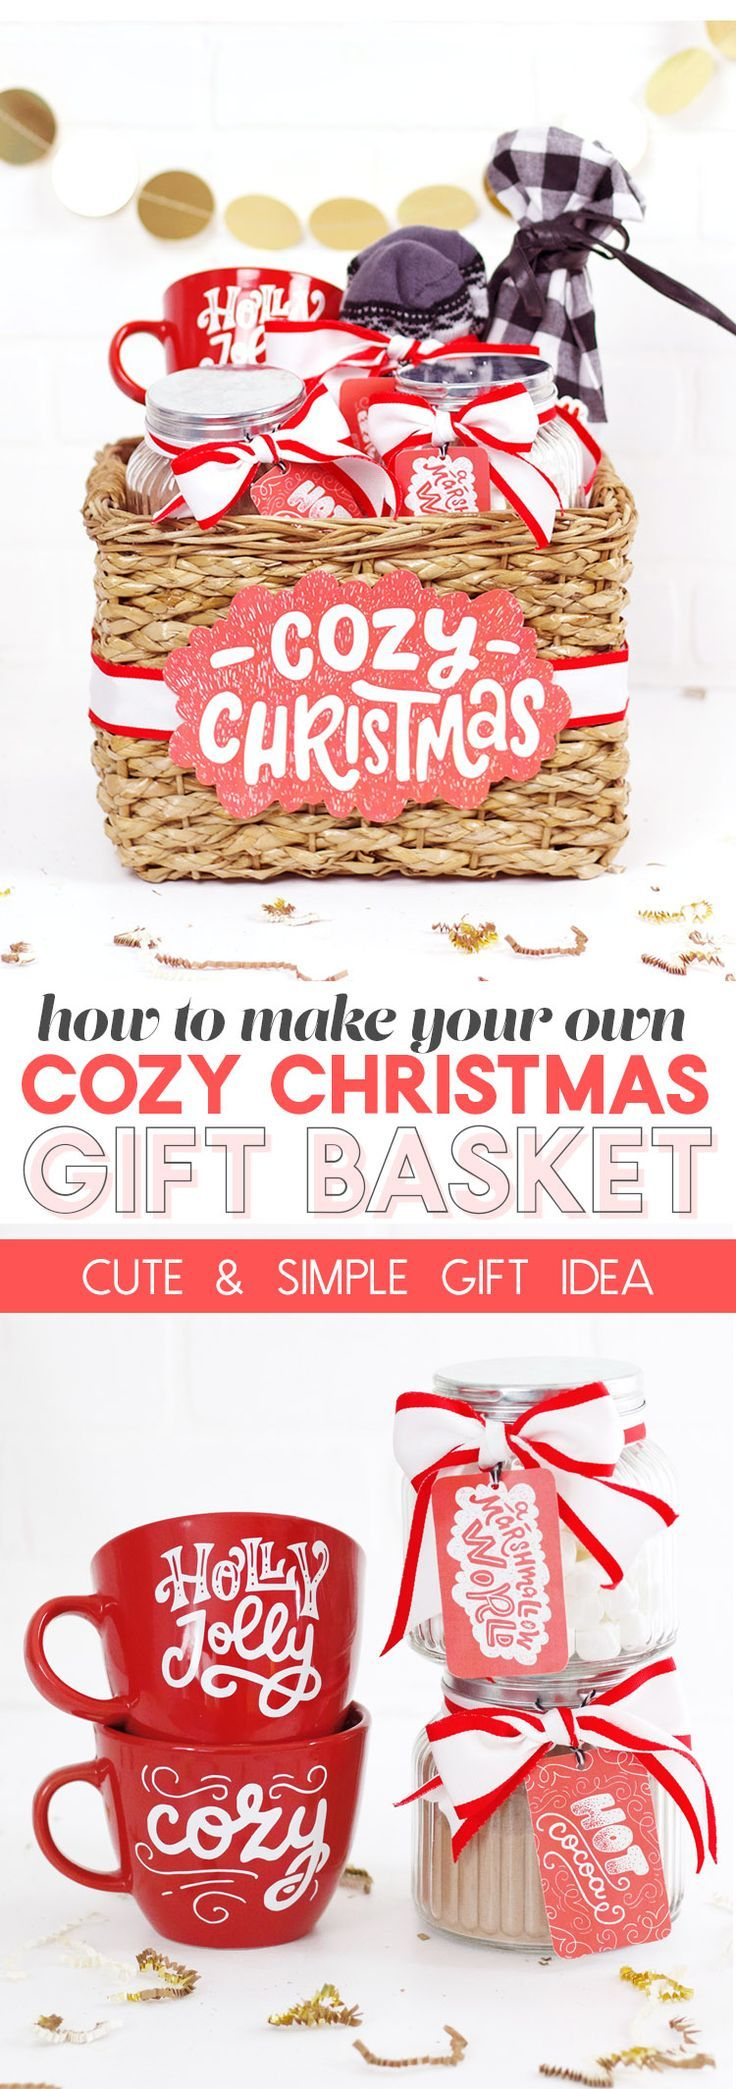 cozy christmas gift basket idea made with Craft Bundles - so cute! #ad #christmas #christmascrafts #christmasgifts #christmasgiftideas